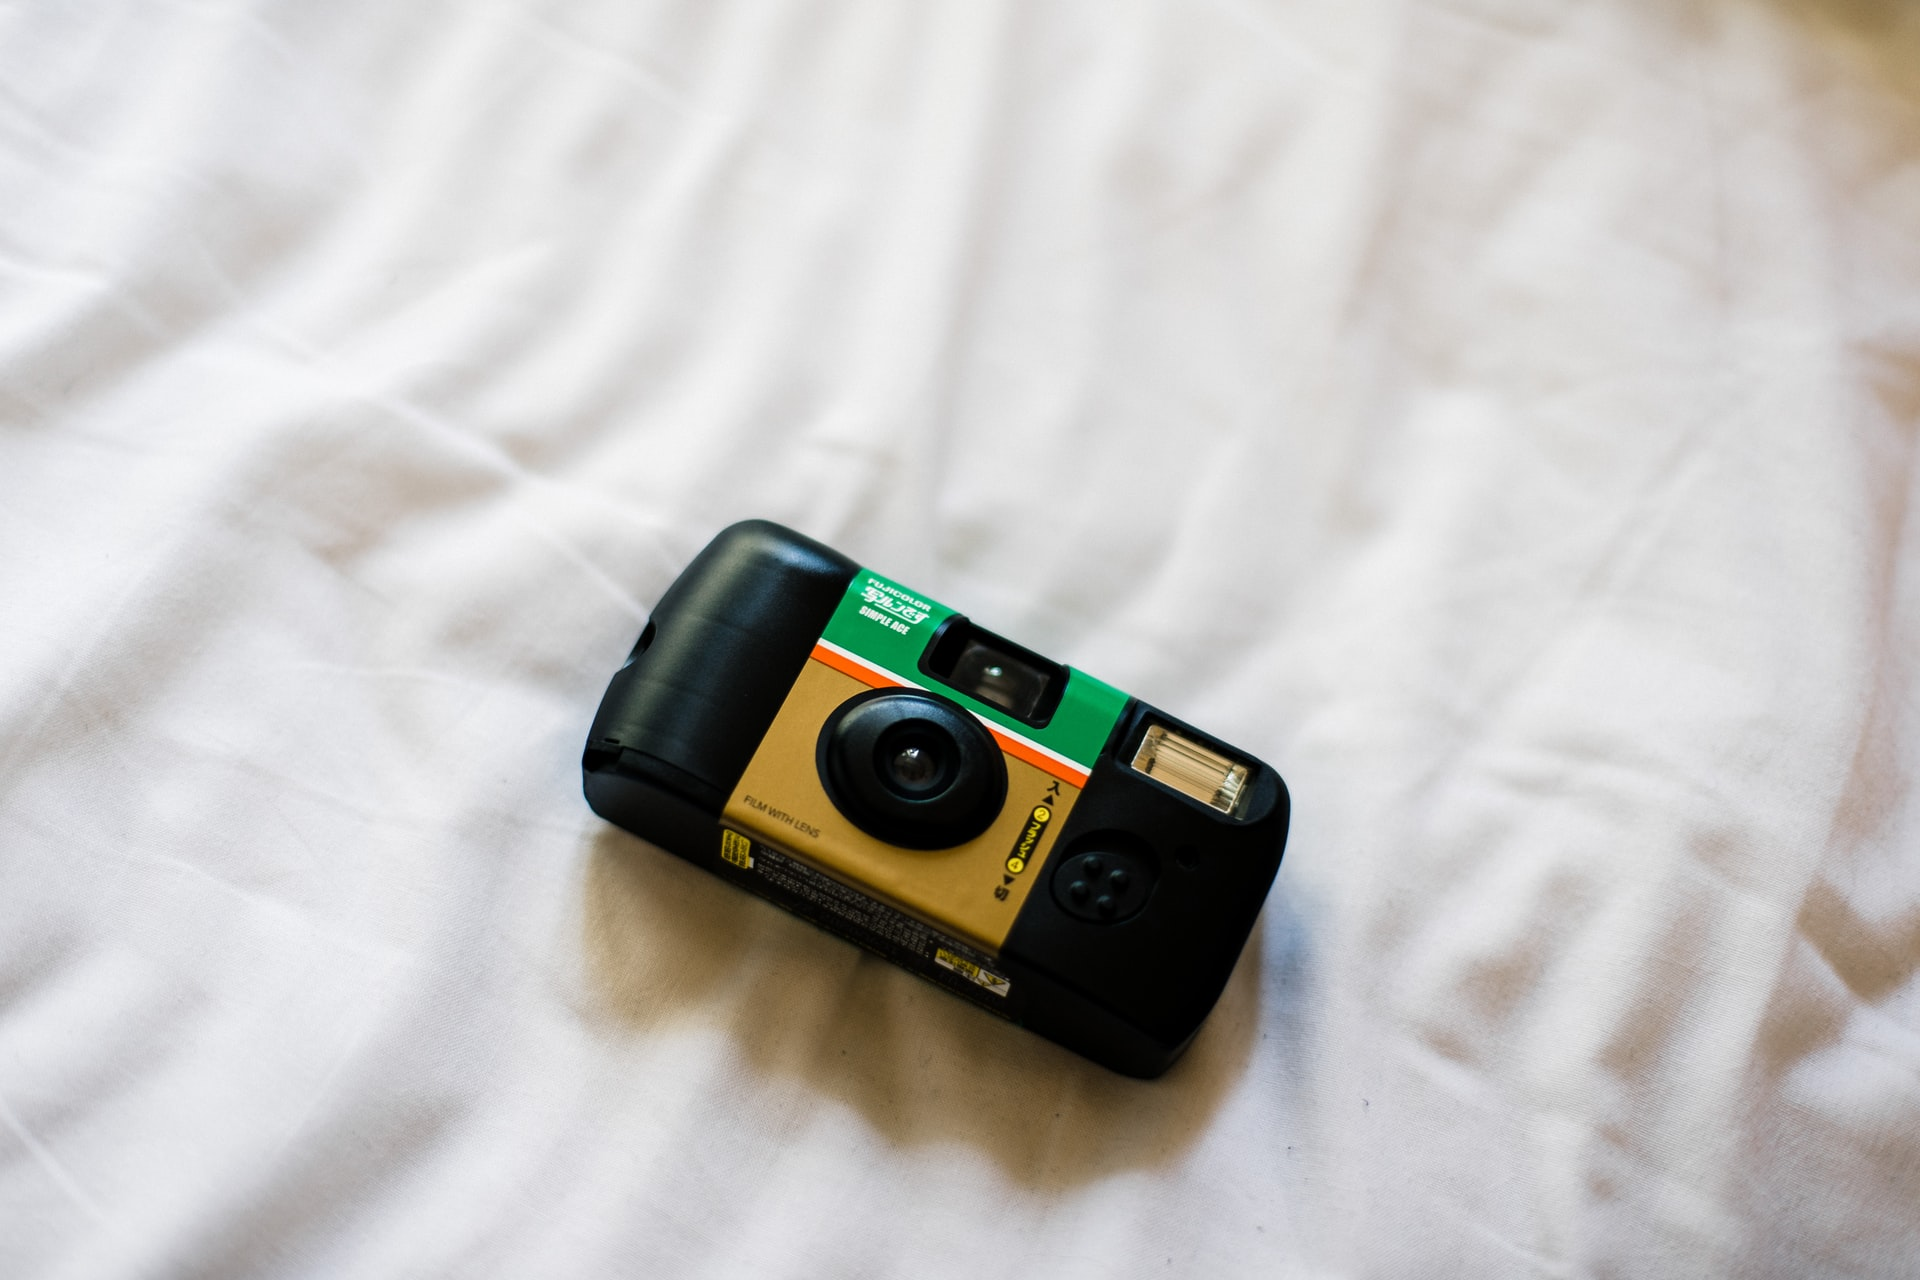 Disposable camera on top of a white sheet. Photo courtesy of Bady Abbas on Unsplash.